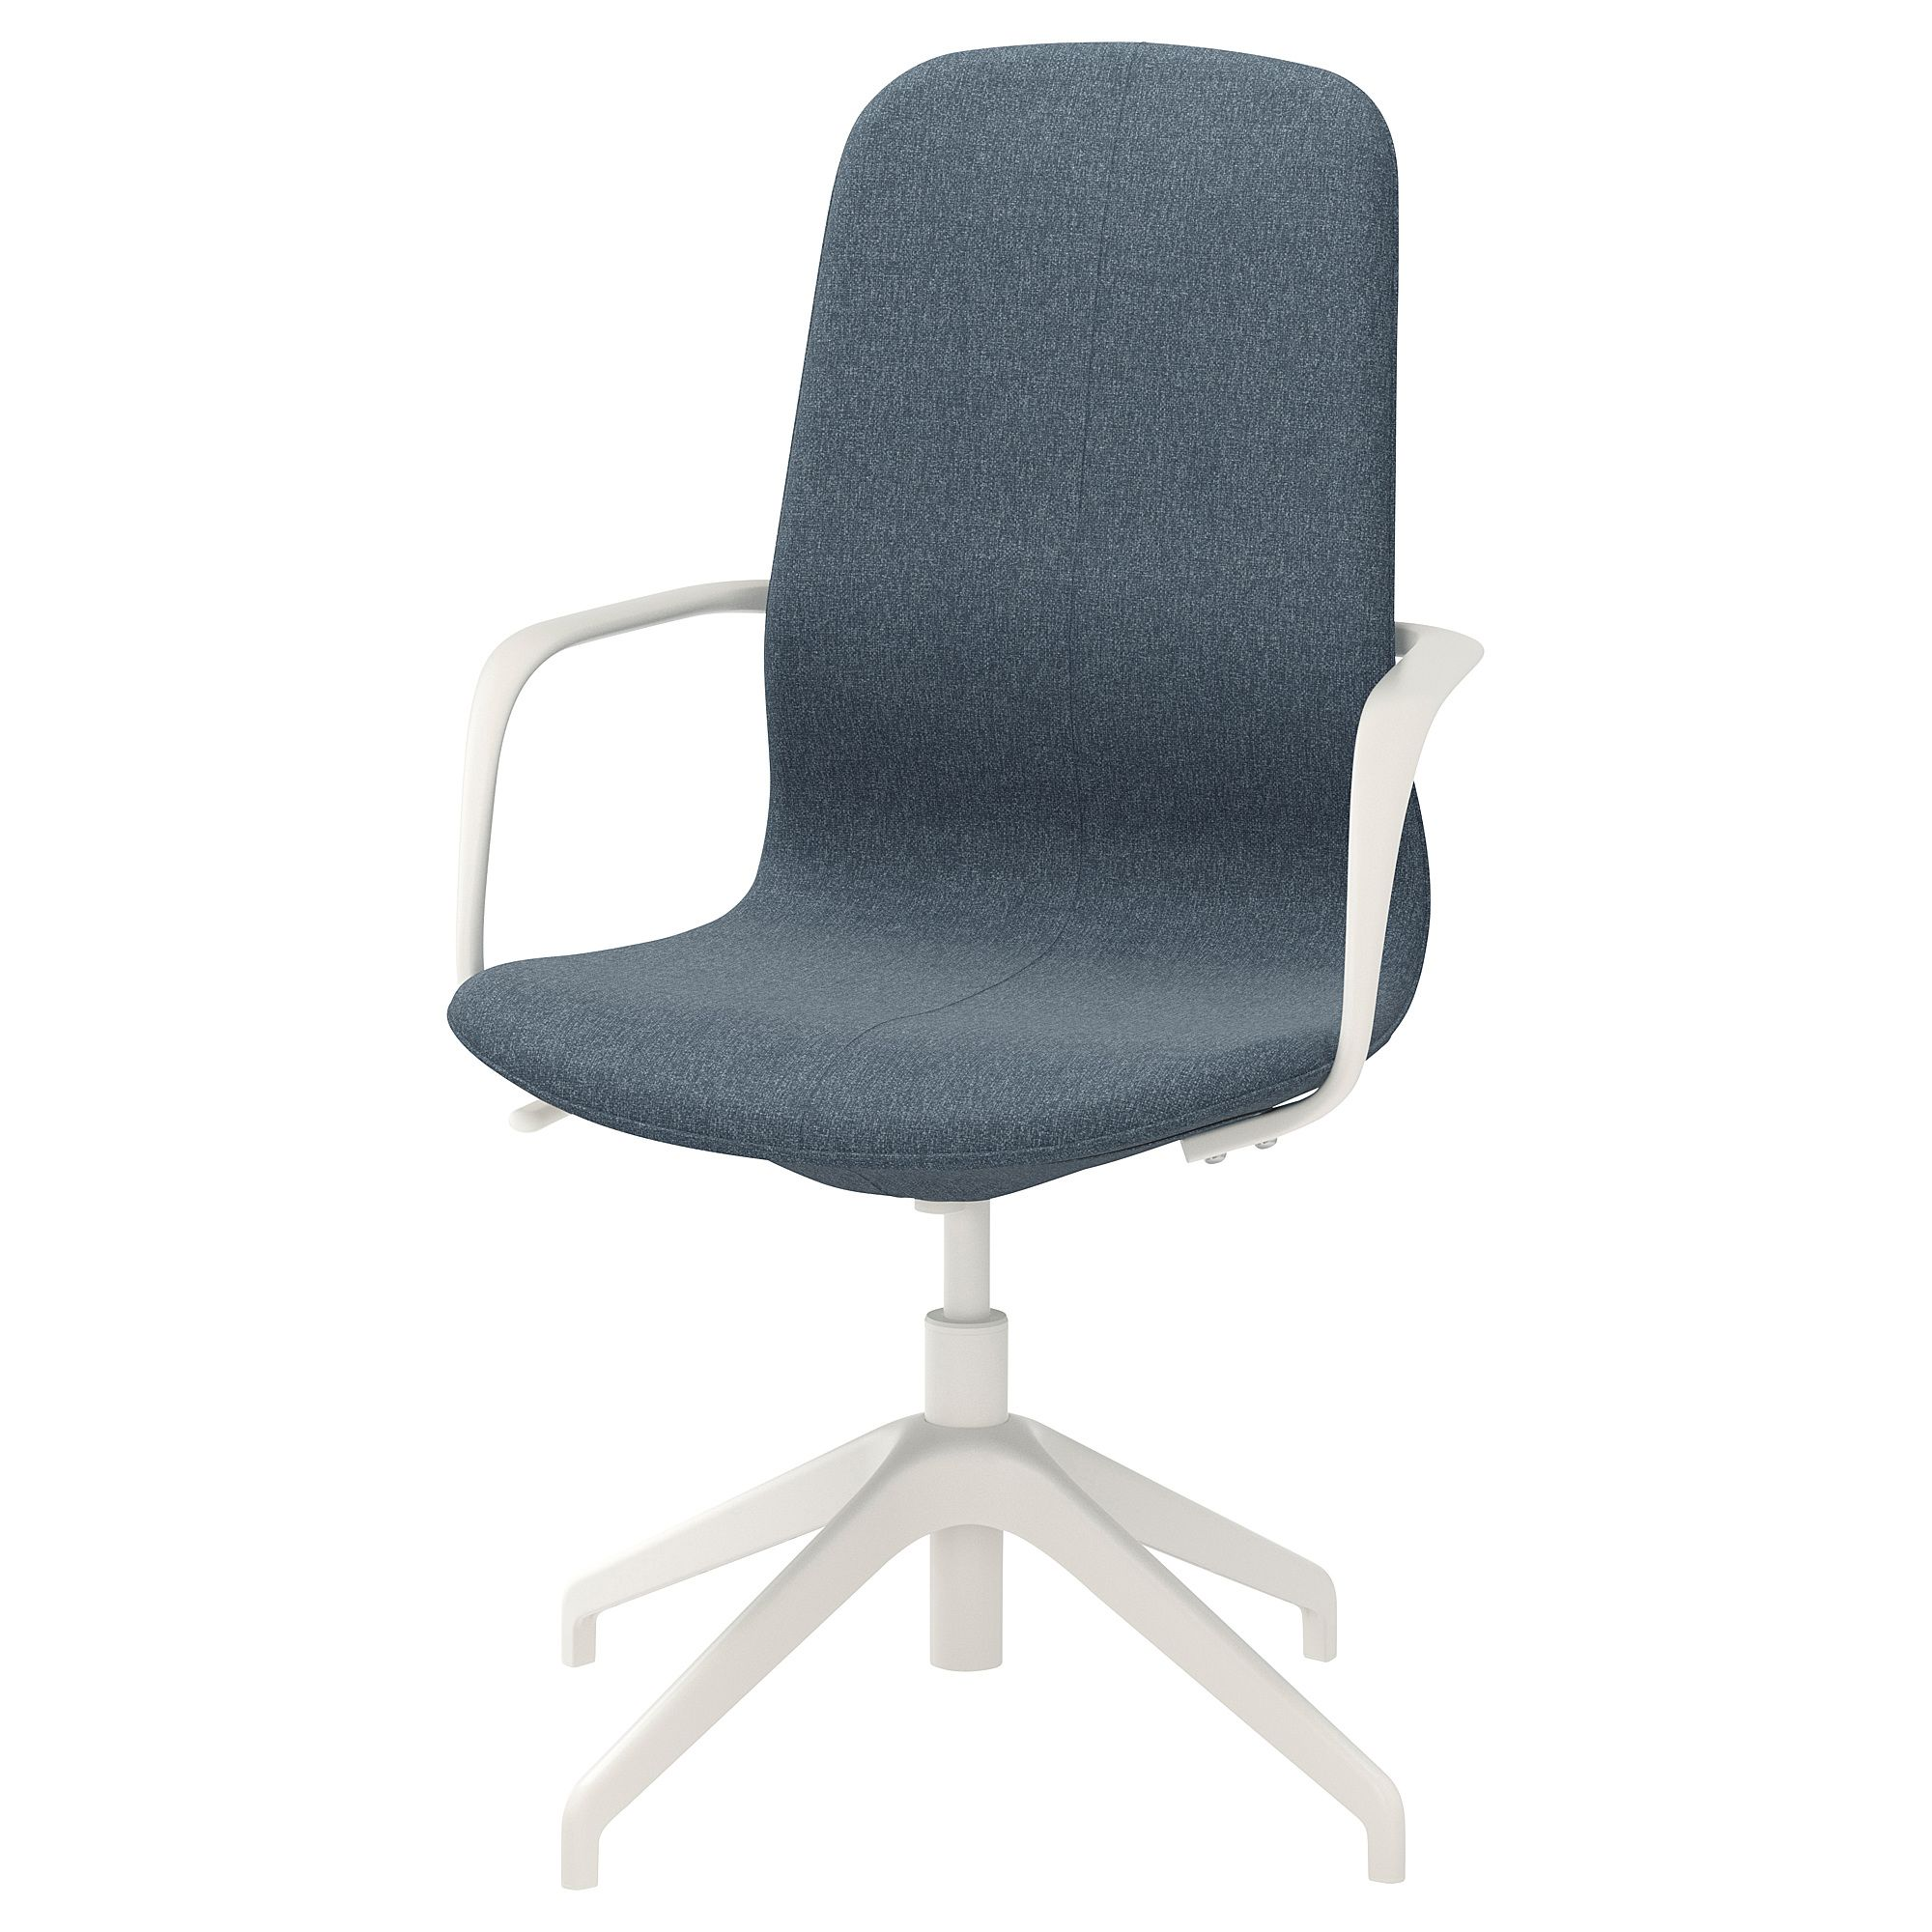 white, Chair with armrests IKEA